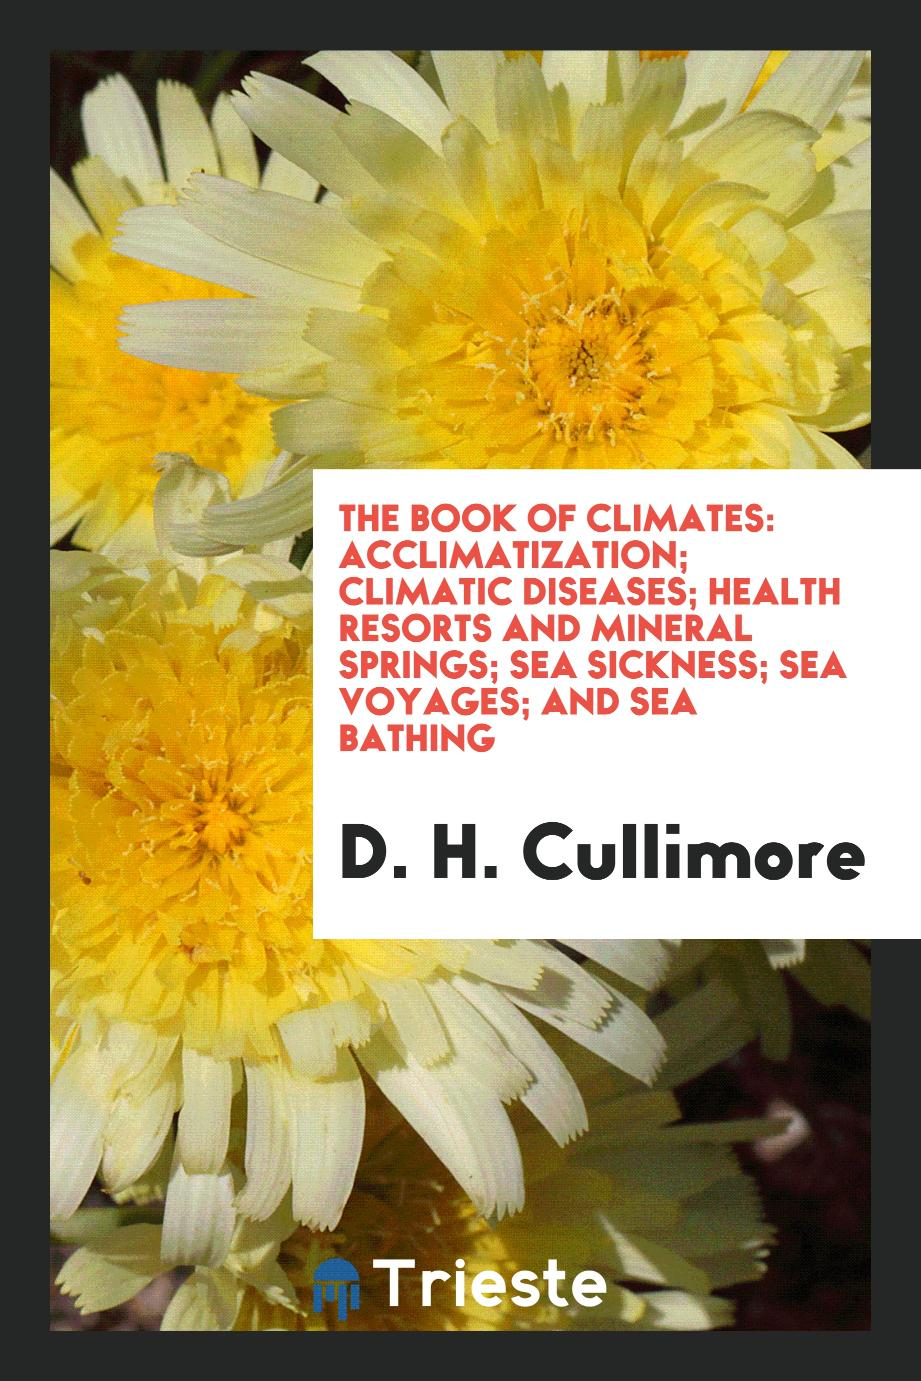 The Book of Climates: Acclimatization; Climatic Diseases; Health Resorts and Mineral Springs; Sea Sickness; Sea Voyages; And Sea Bathing